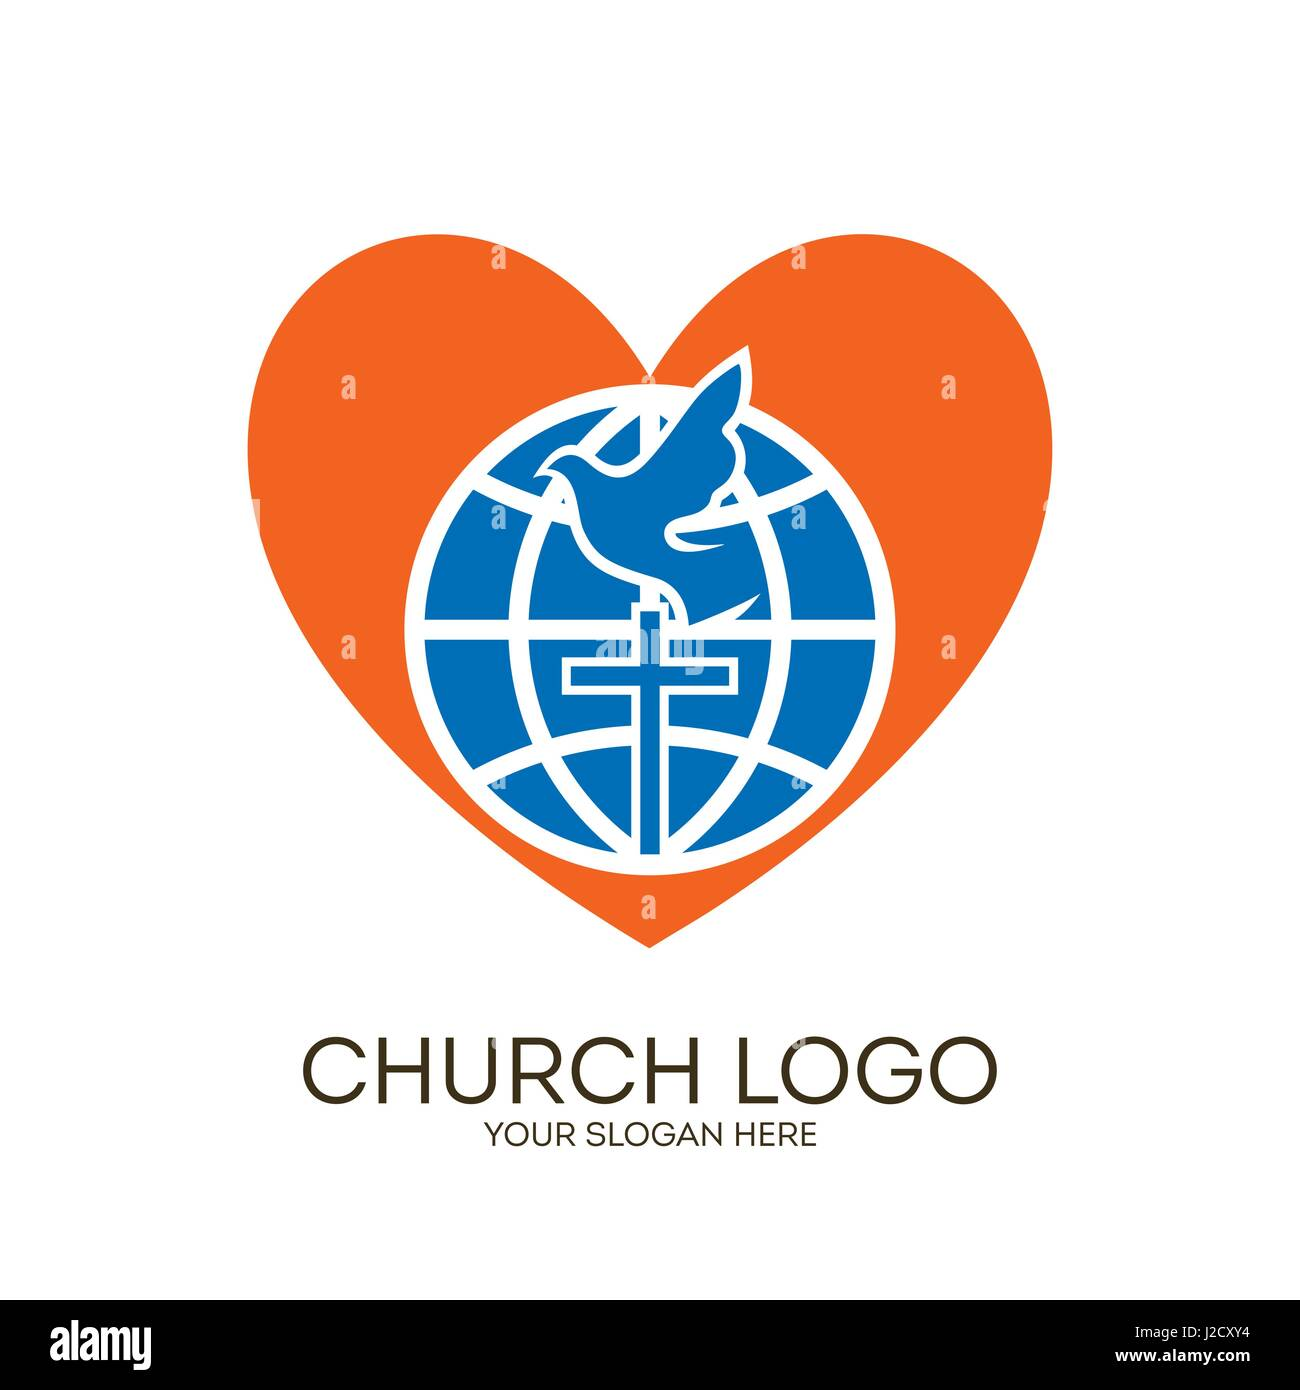 Church logo christian symbols globe cross dove and heart stock church logo christian symbols globe cross dove and heart altavistaventures Choice Image